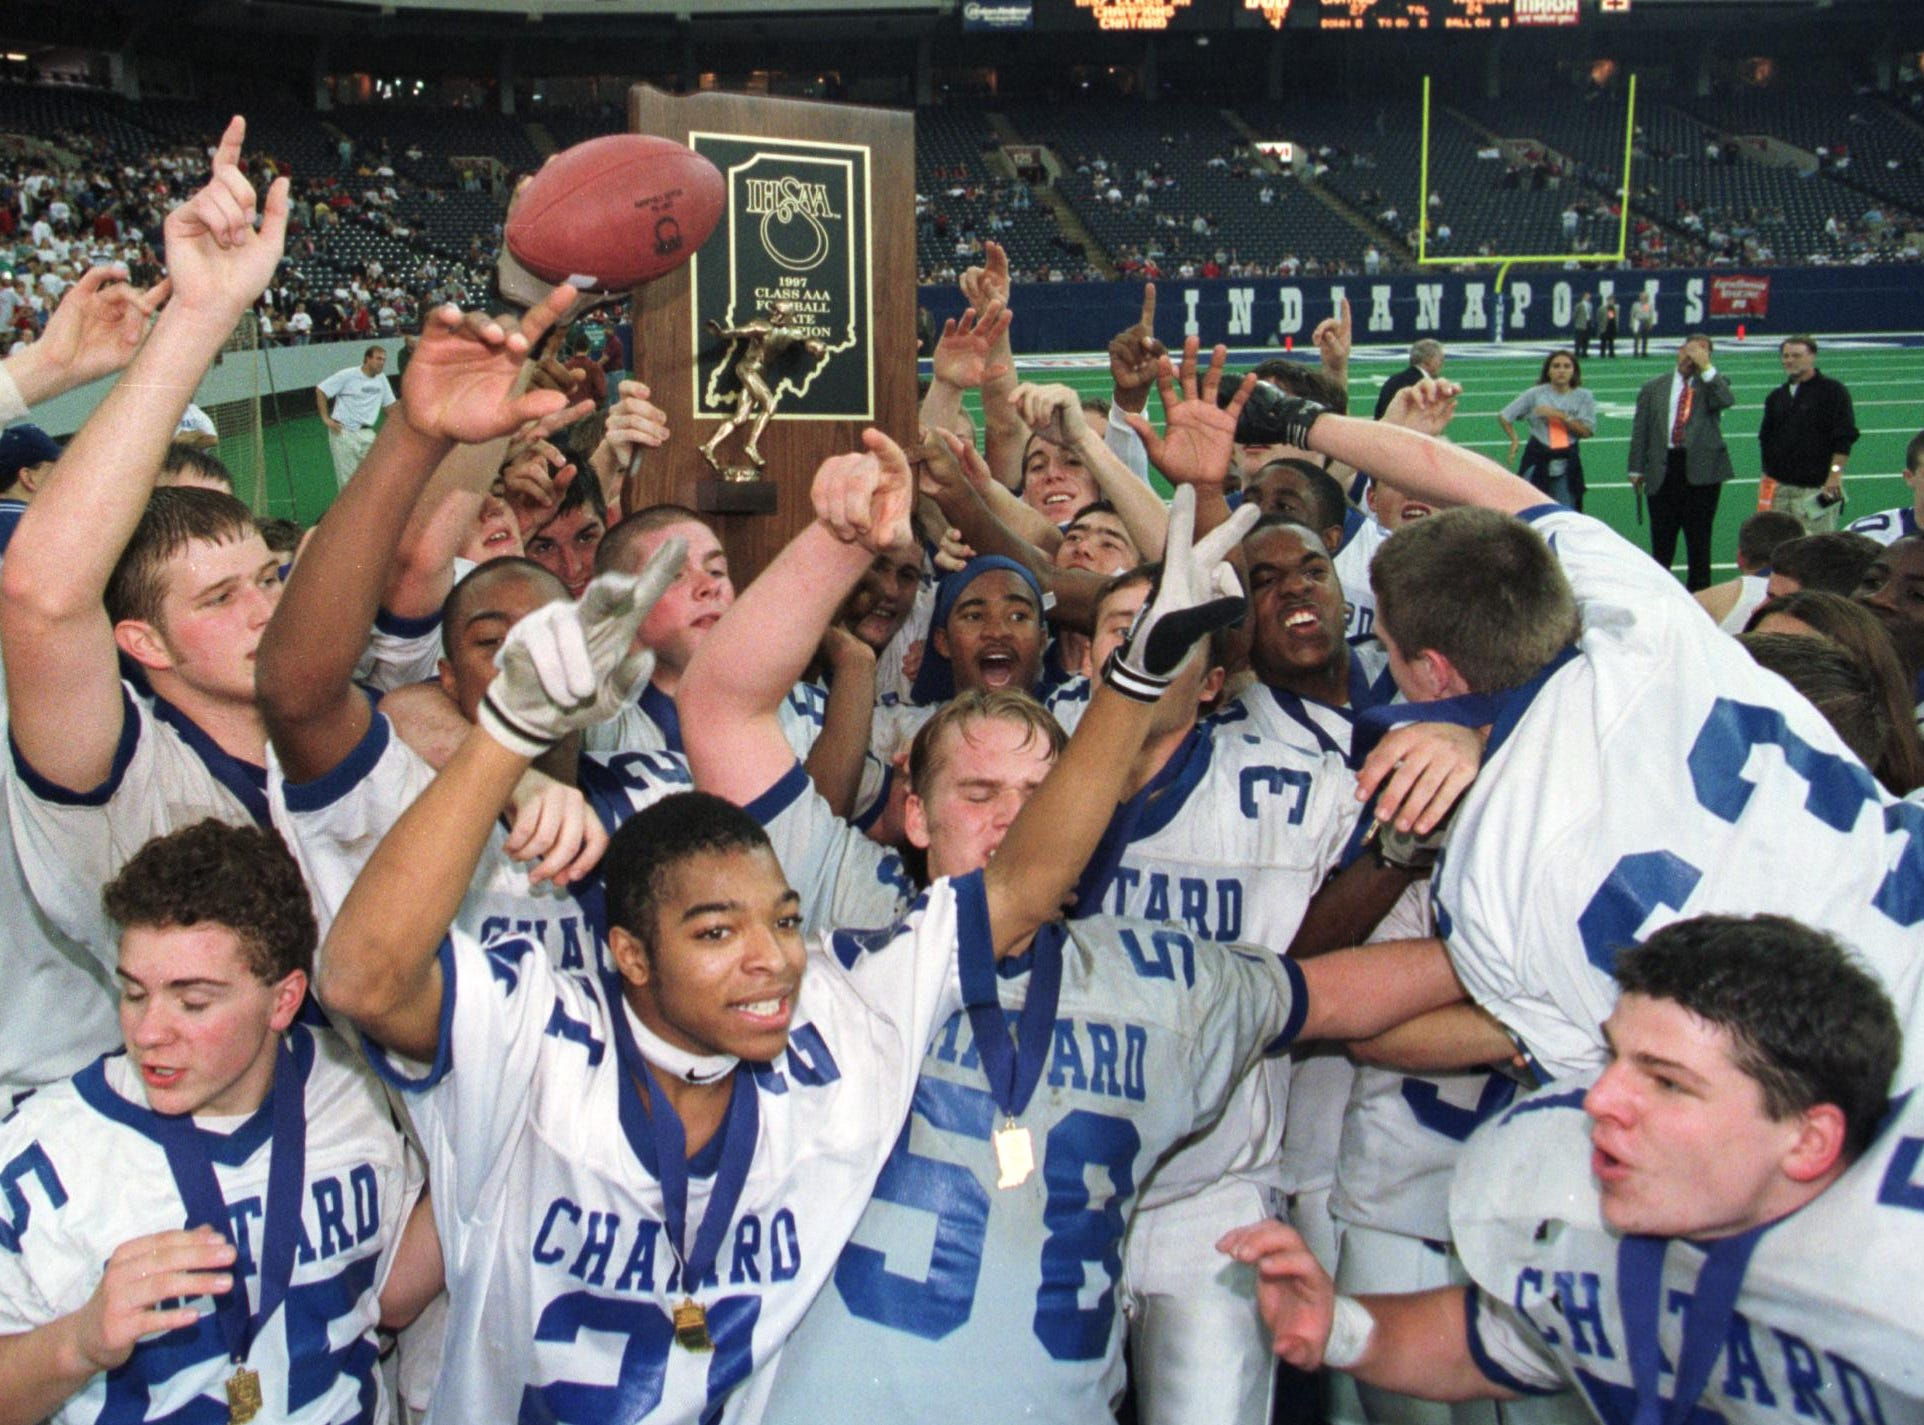 Chatard High School football team members celebrate after defeating Andrean 27-24 in the ISHAA 3A football plyoffs at the Hoosier Dome in 1997.